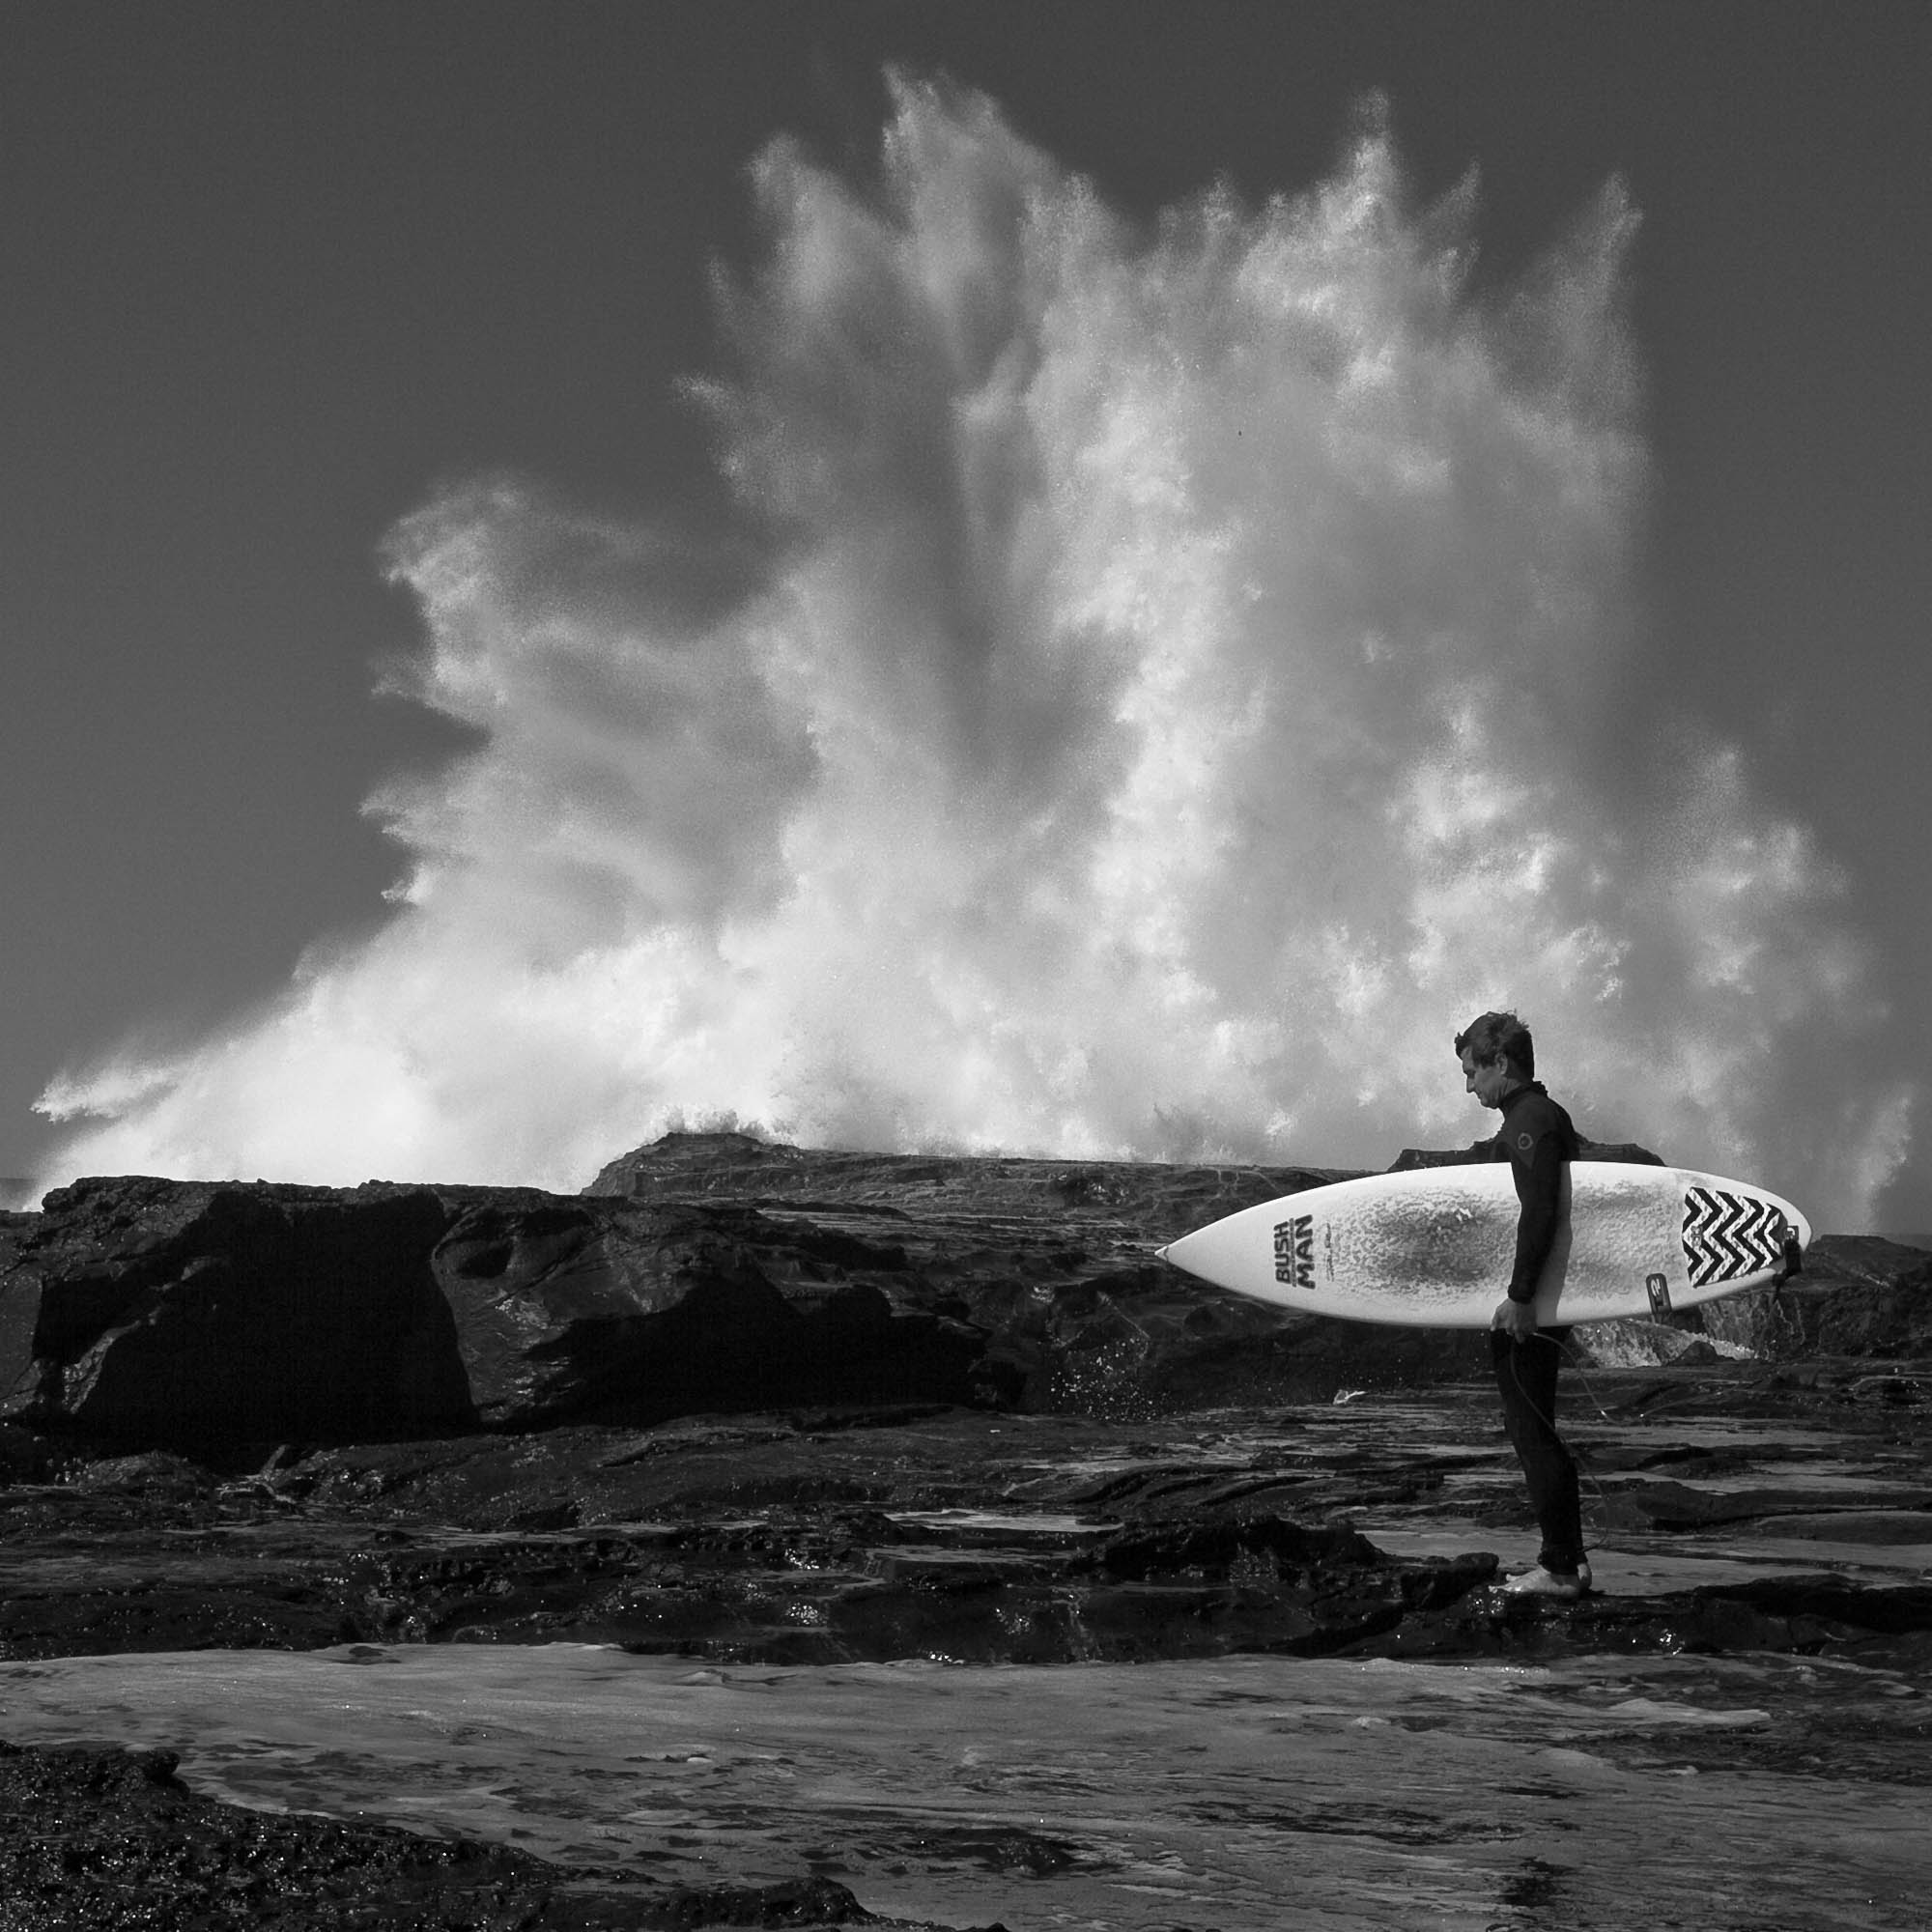 There's an art in knowing when to stop shooting, in being confident that the shot is in the bag. Black and white photo of a surfer